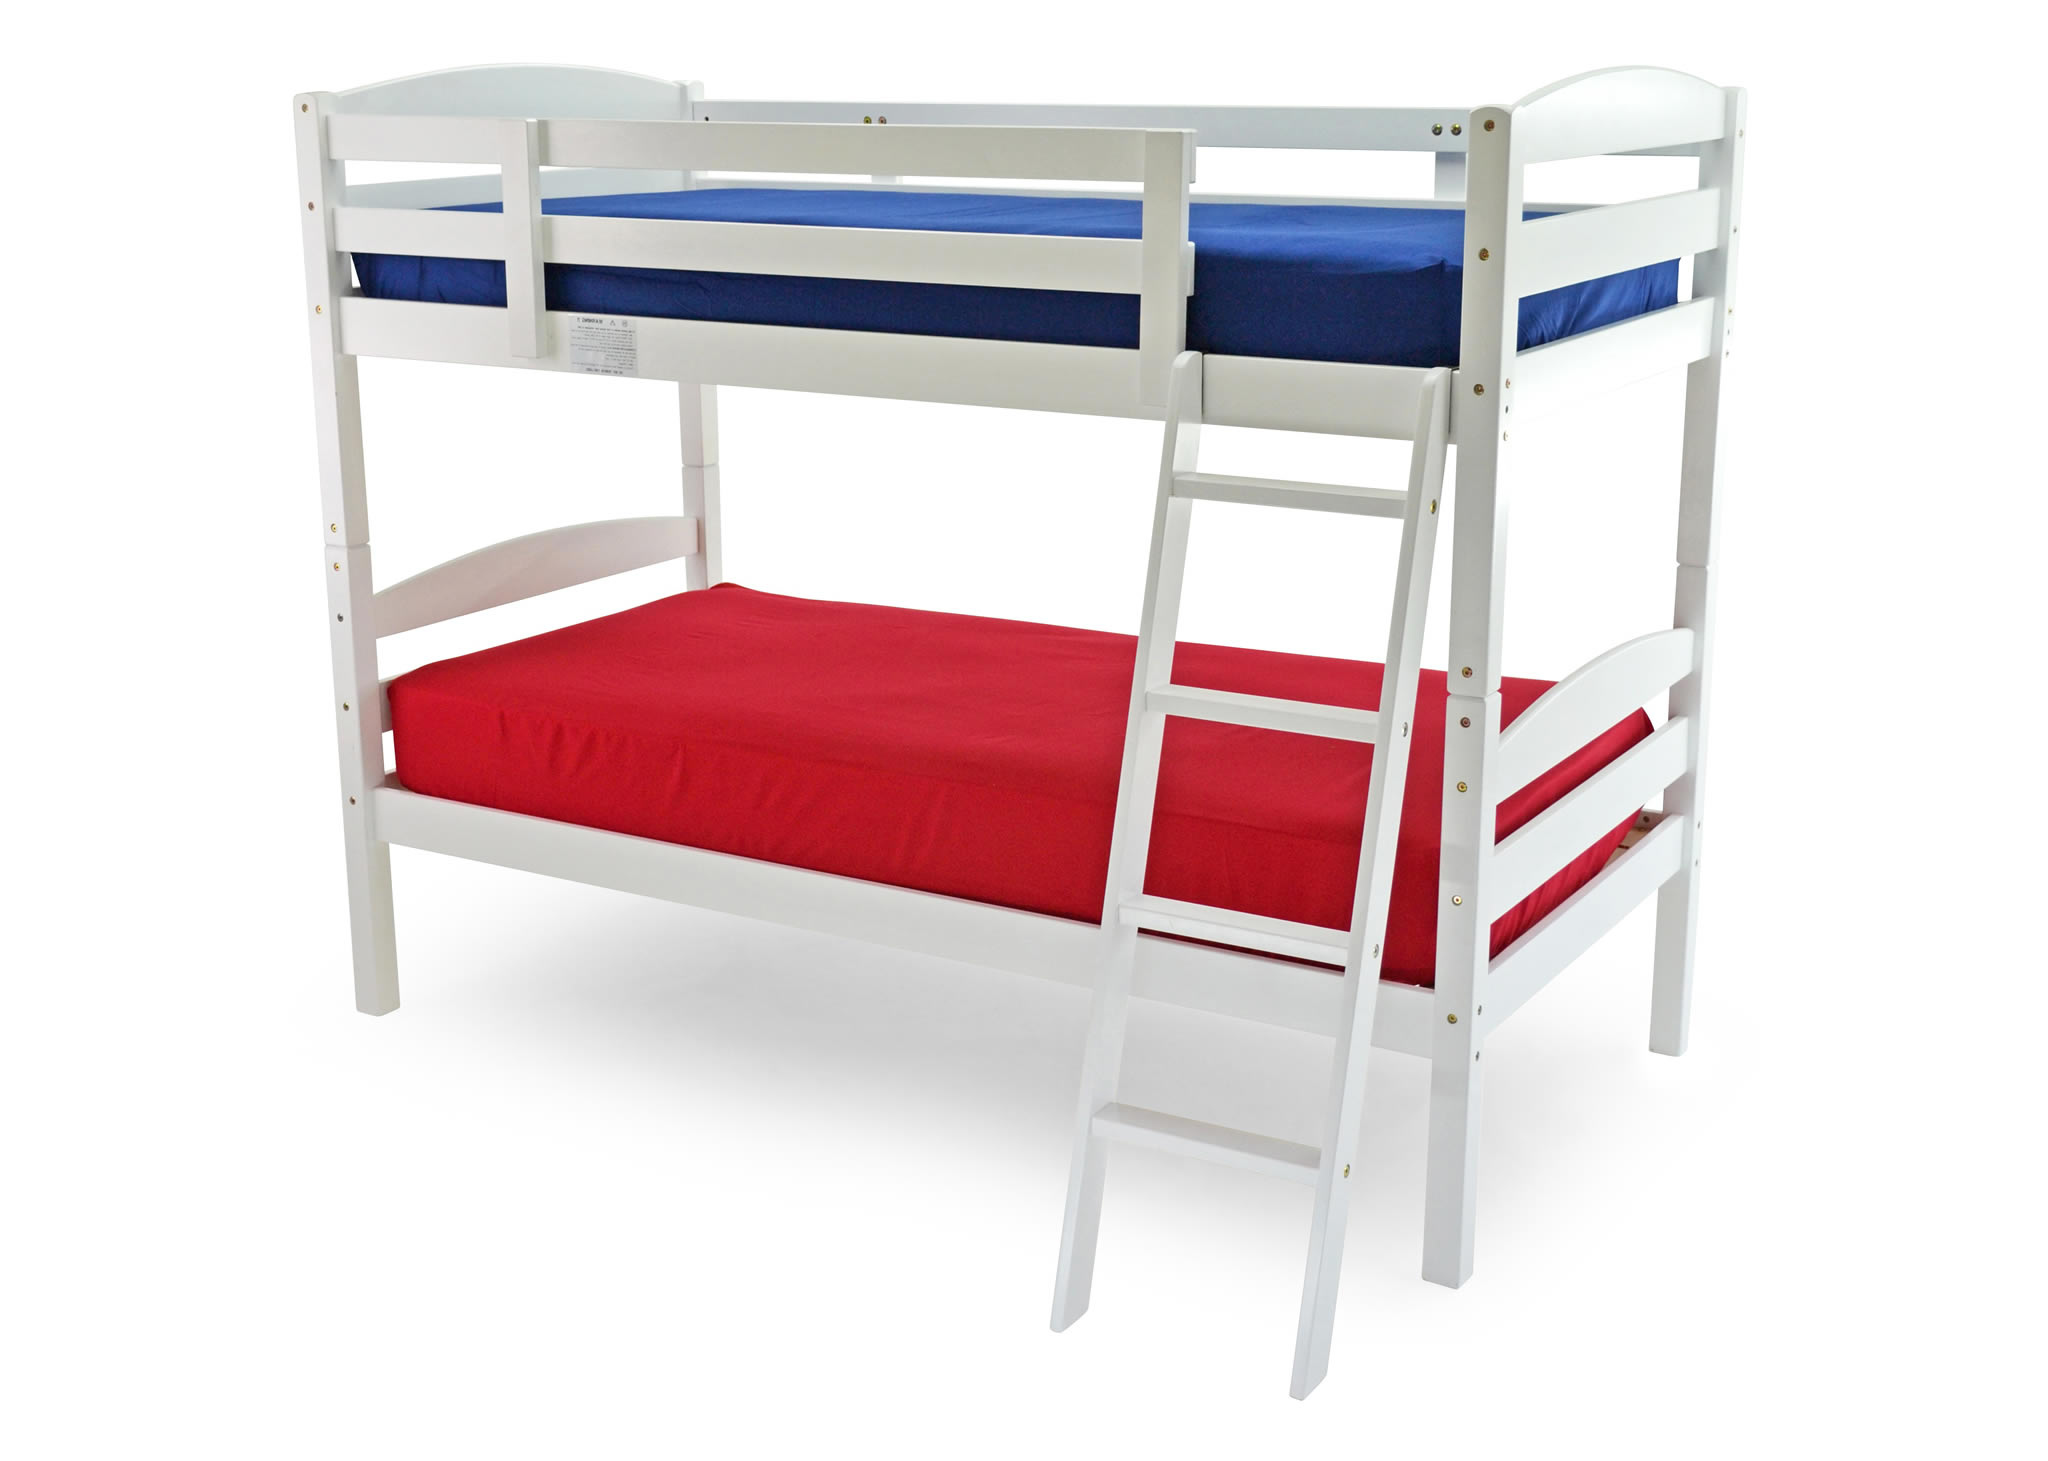 MODBUNKW_Wholesale_Beds_Suppliers